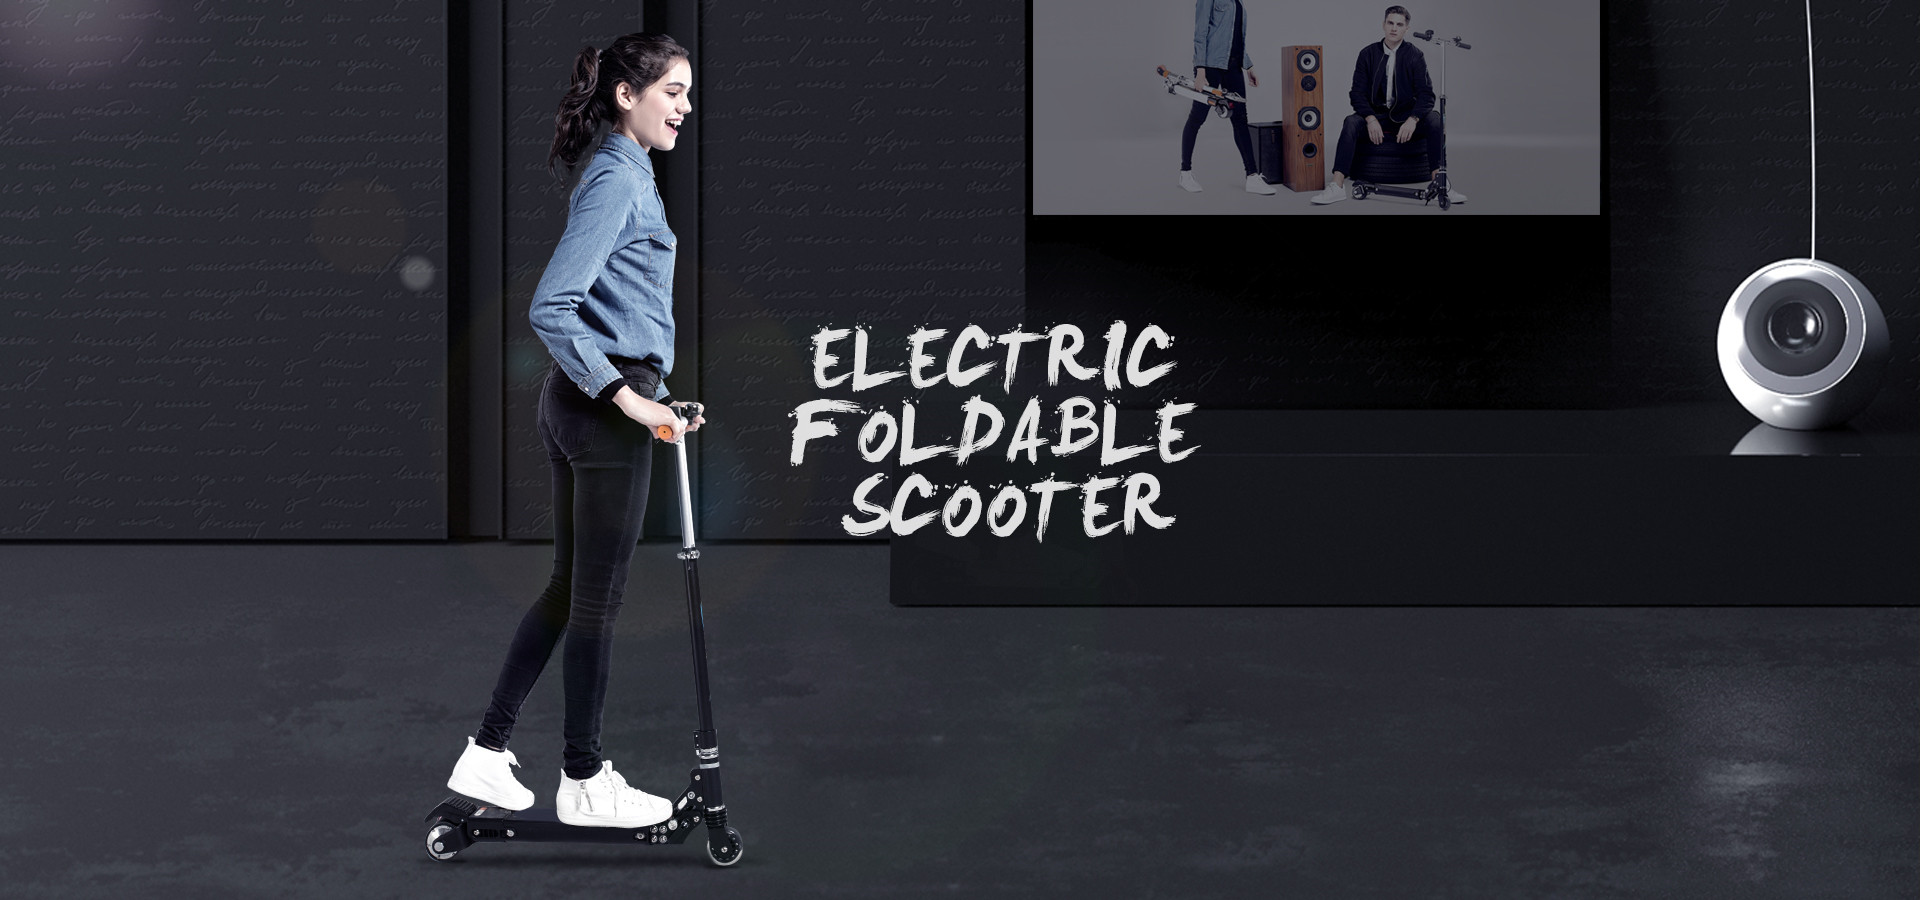 Z8 mini lightweight electric scooter